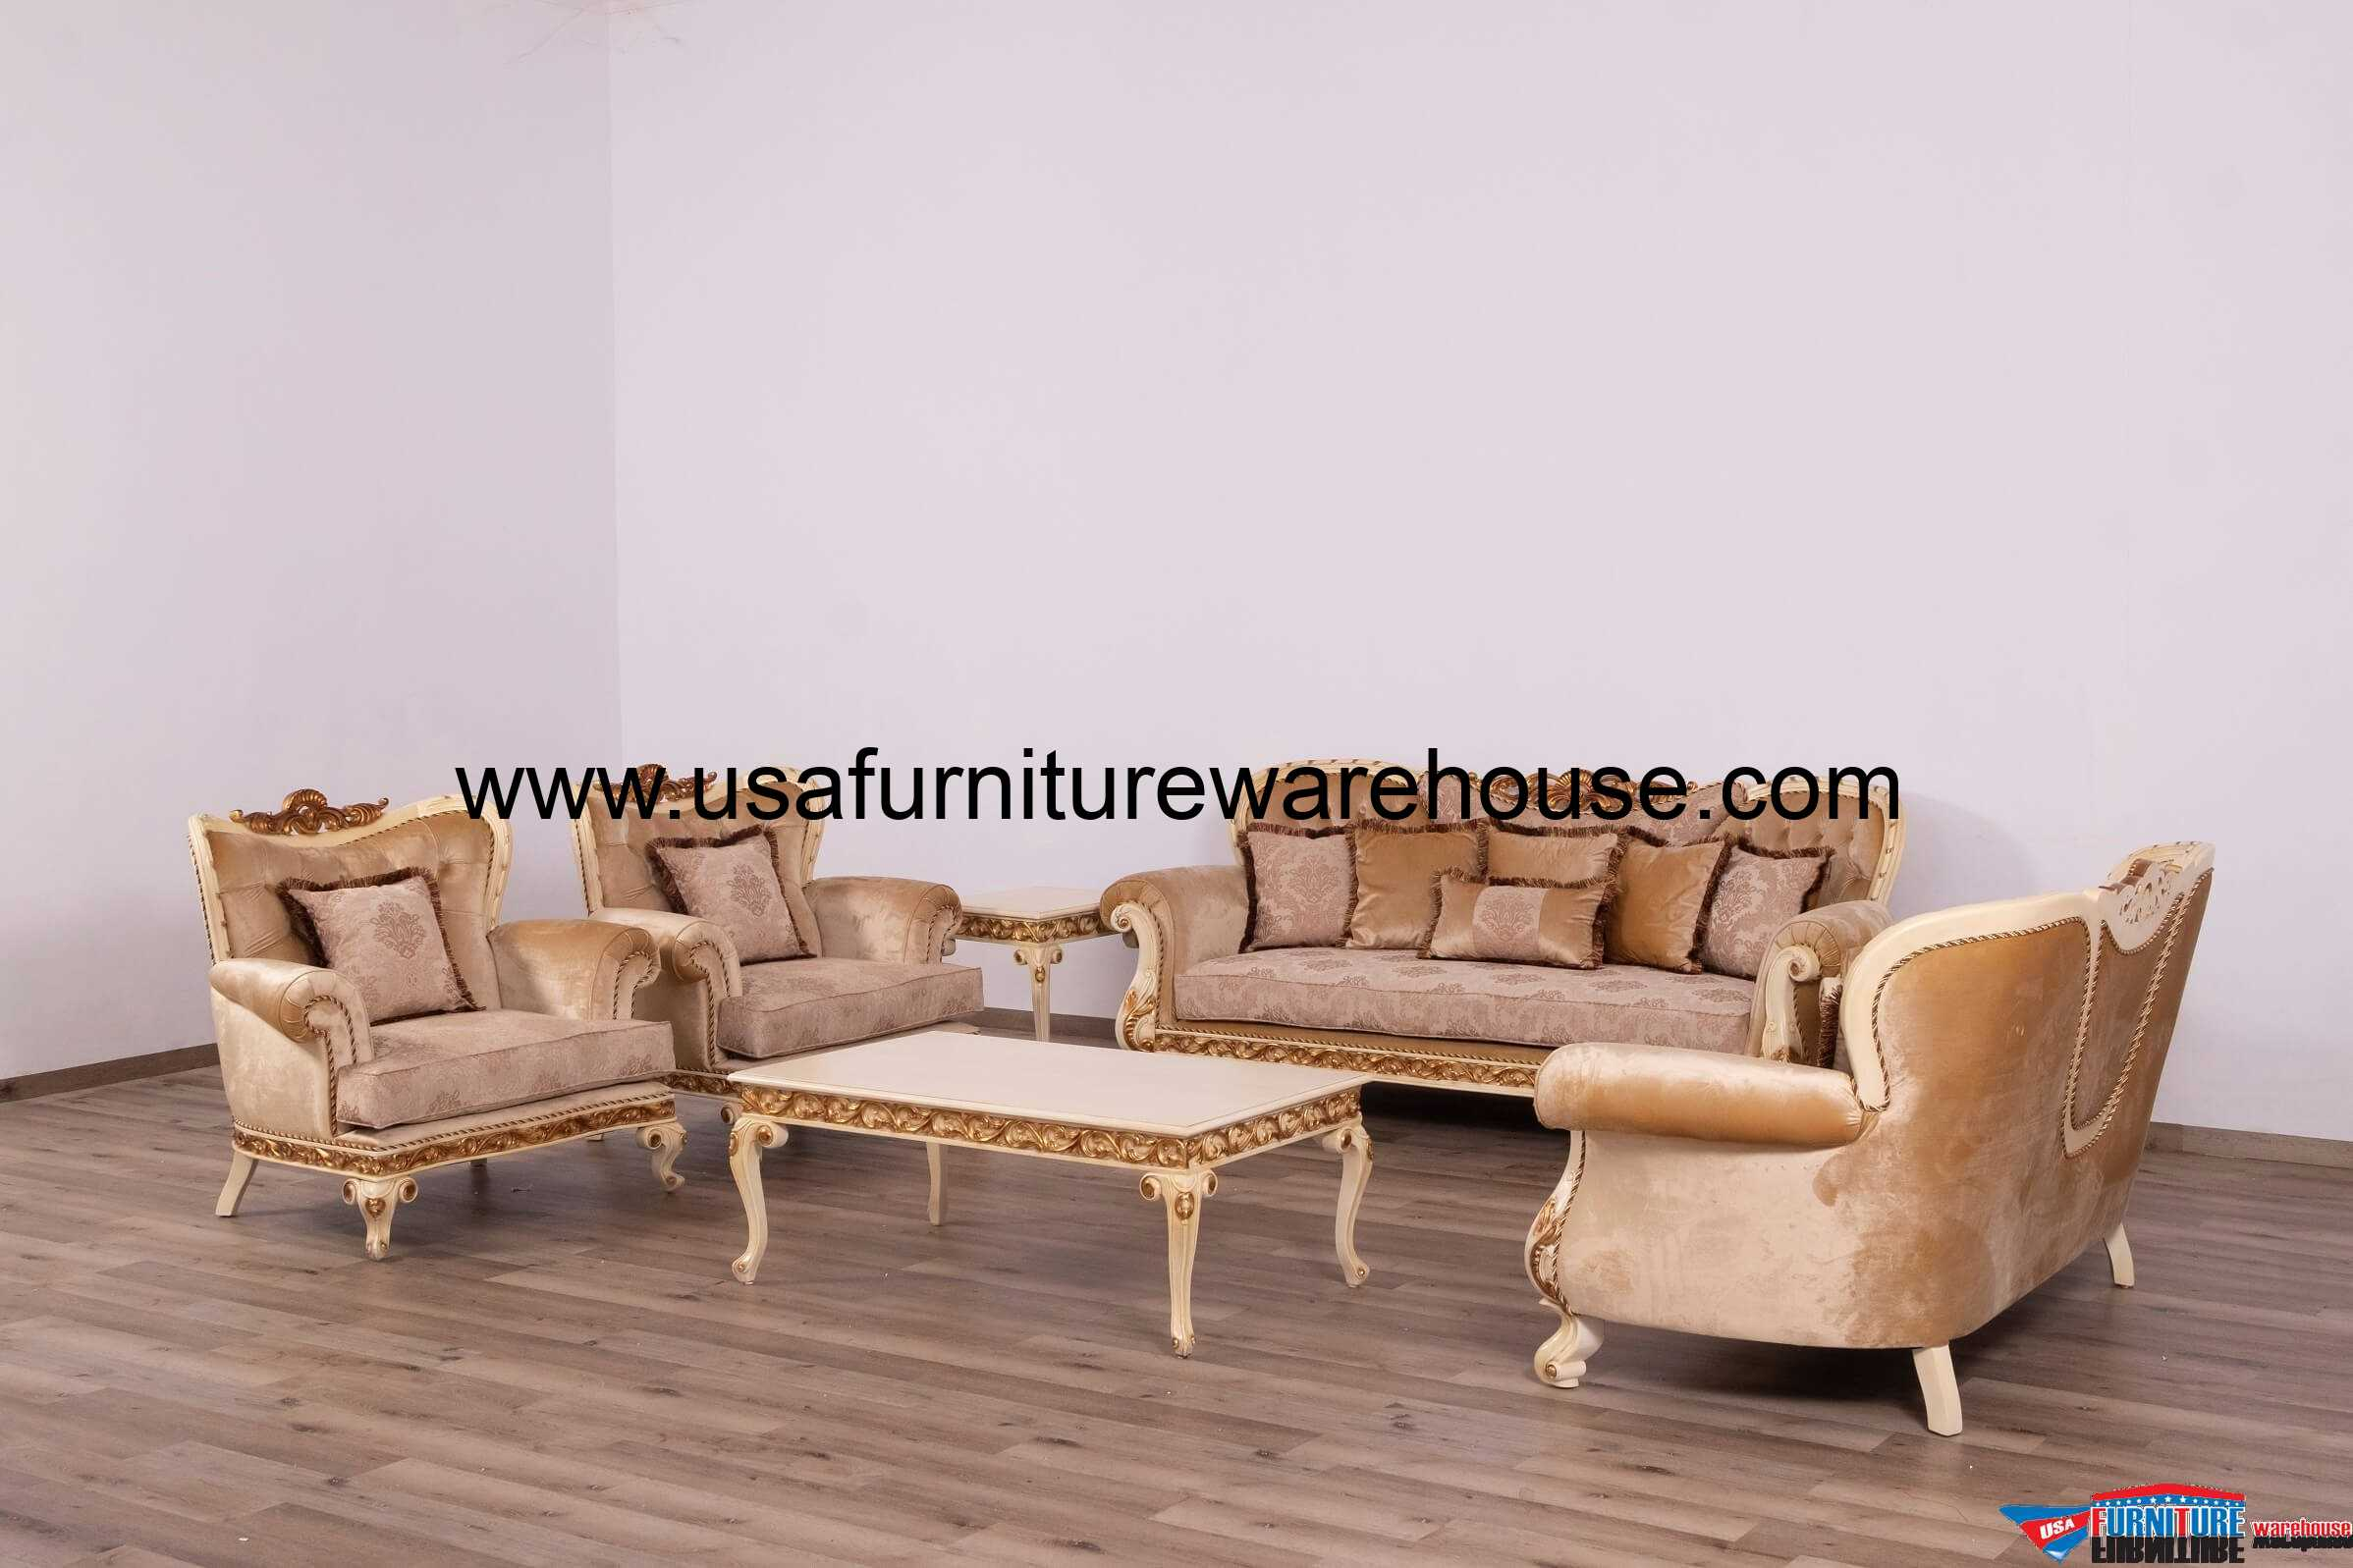 European furniture fantasia luxury sofa set